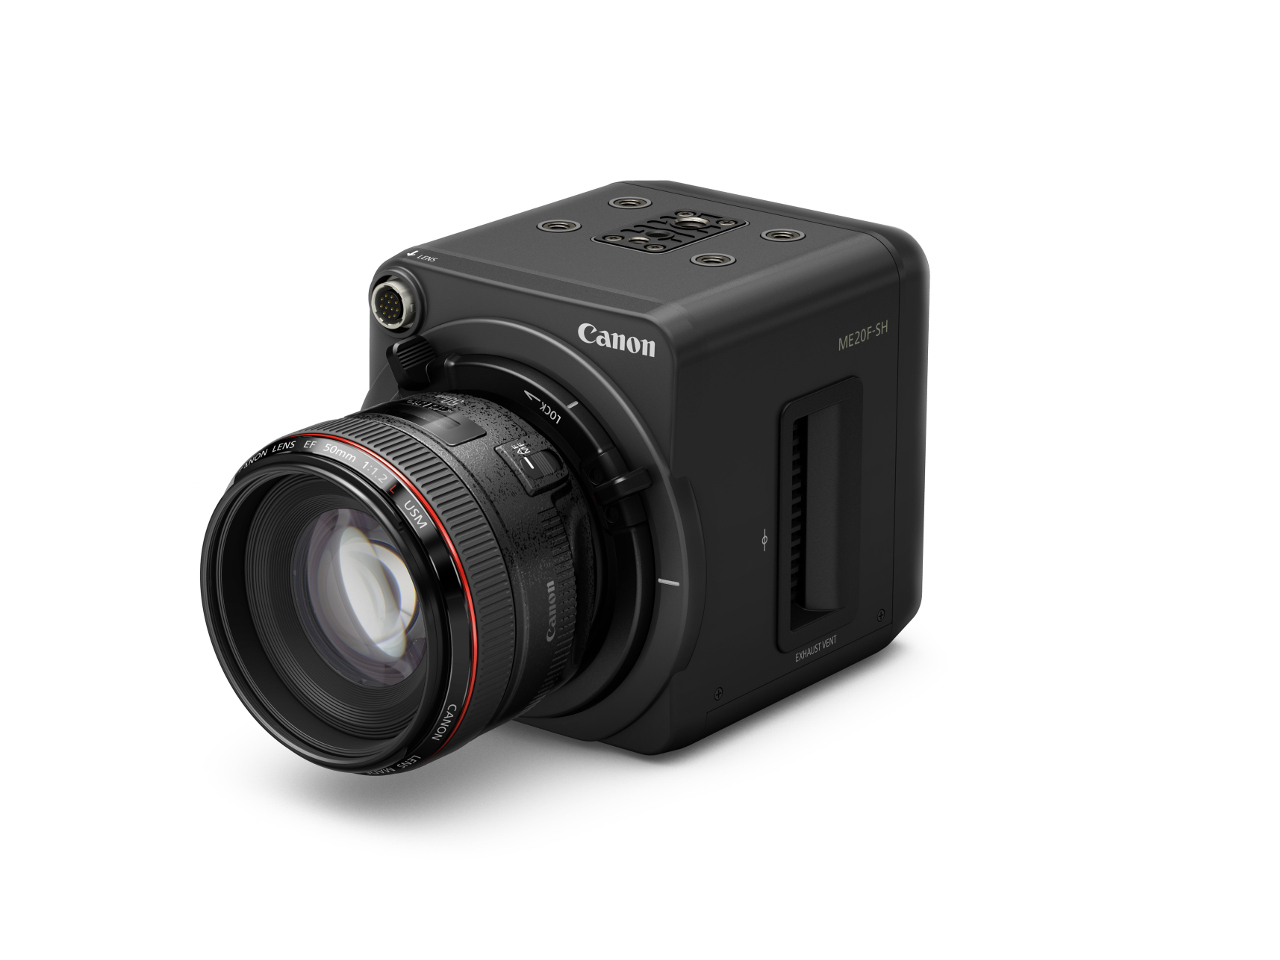 CANON ME20F-SH LOW LIGHT CAMERA